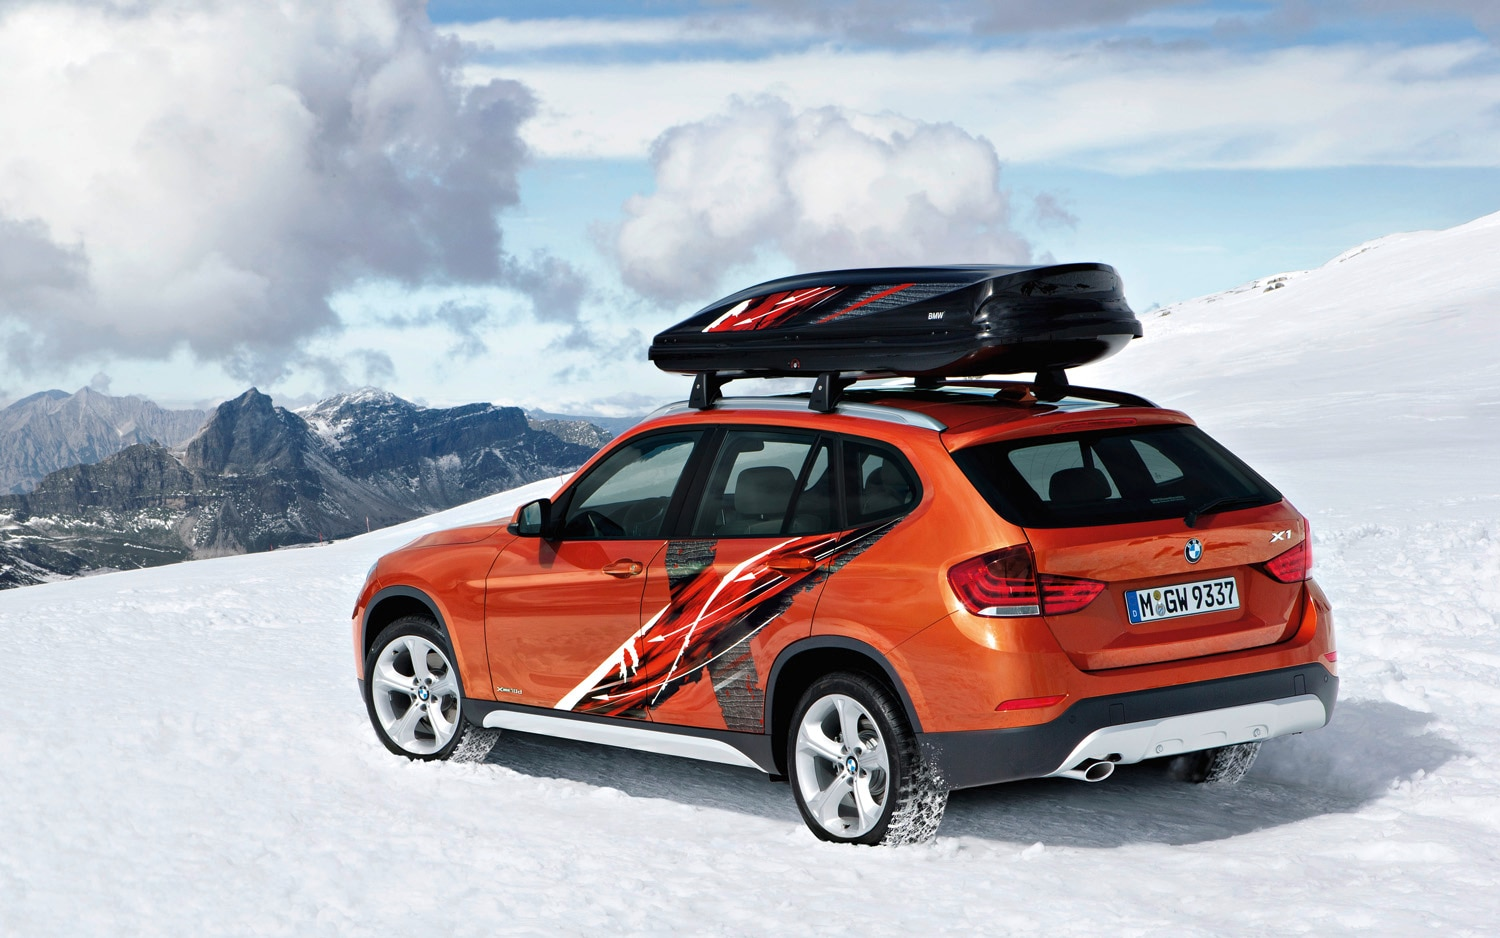 2013 BMW X1 Powder Ride Edition Rear Three Quarter Orange1